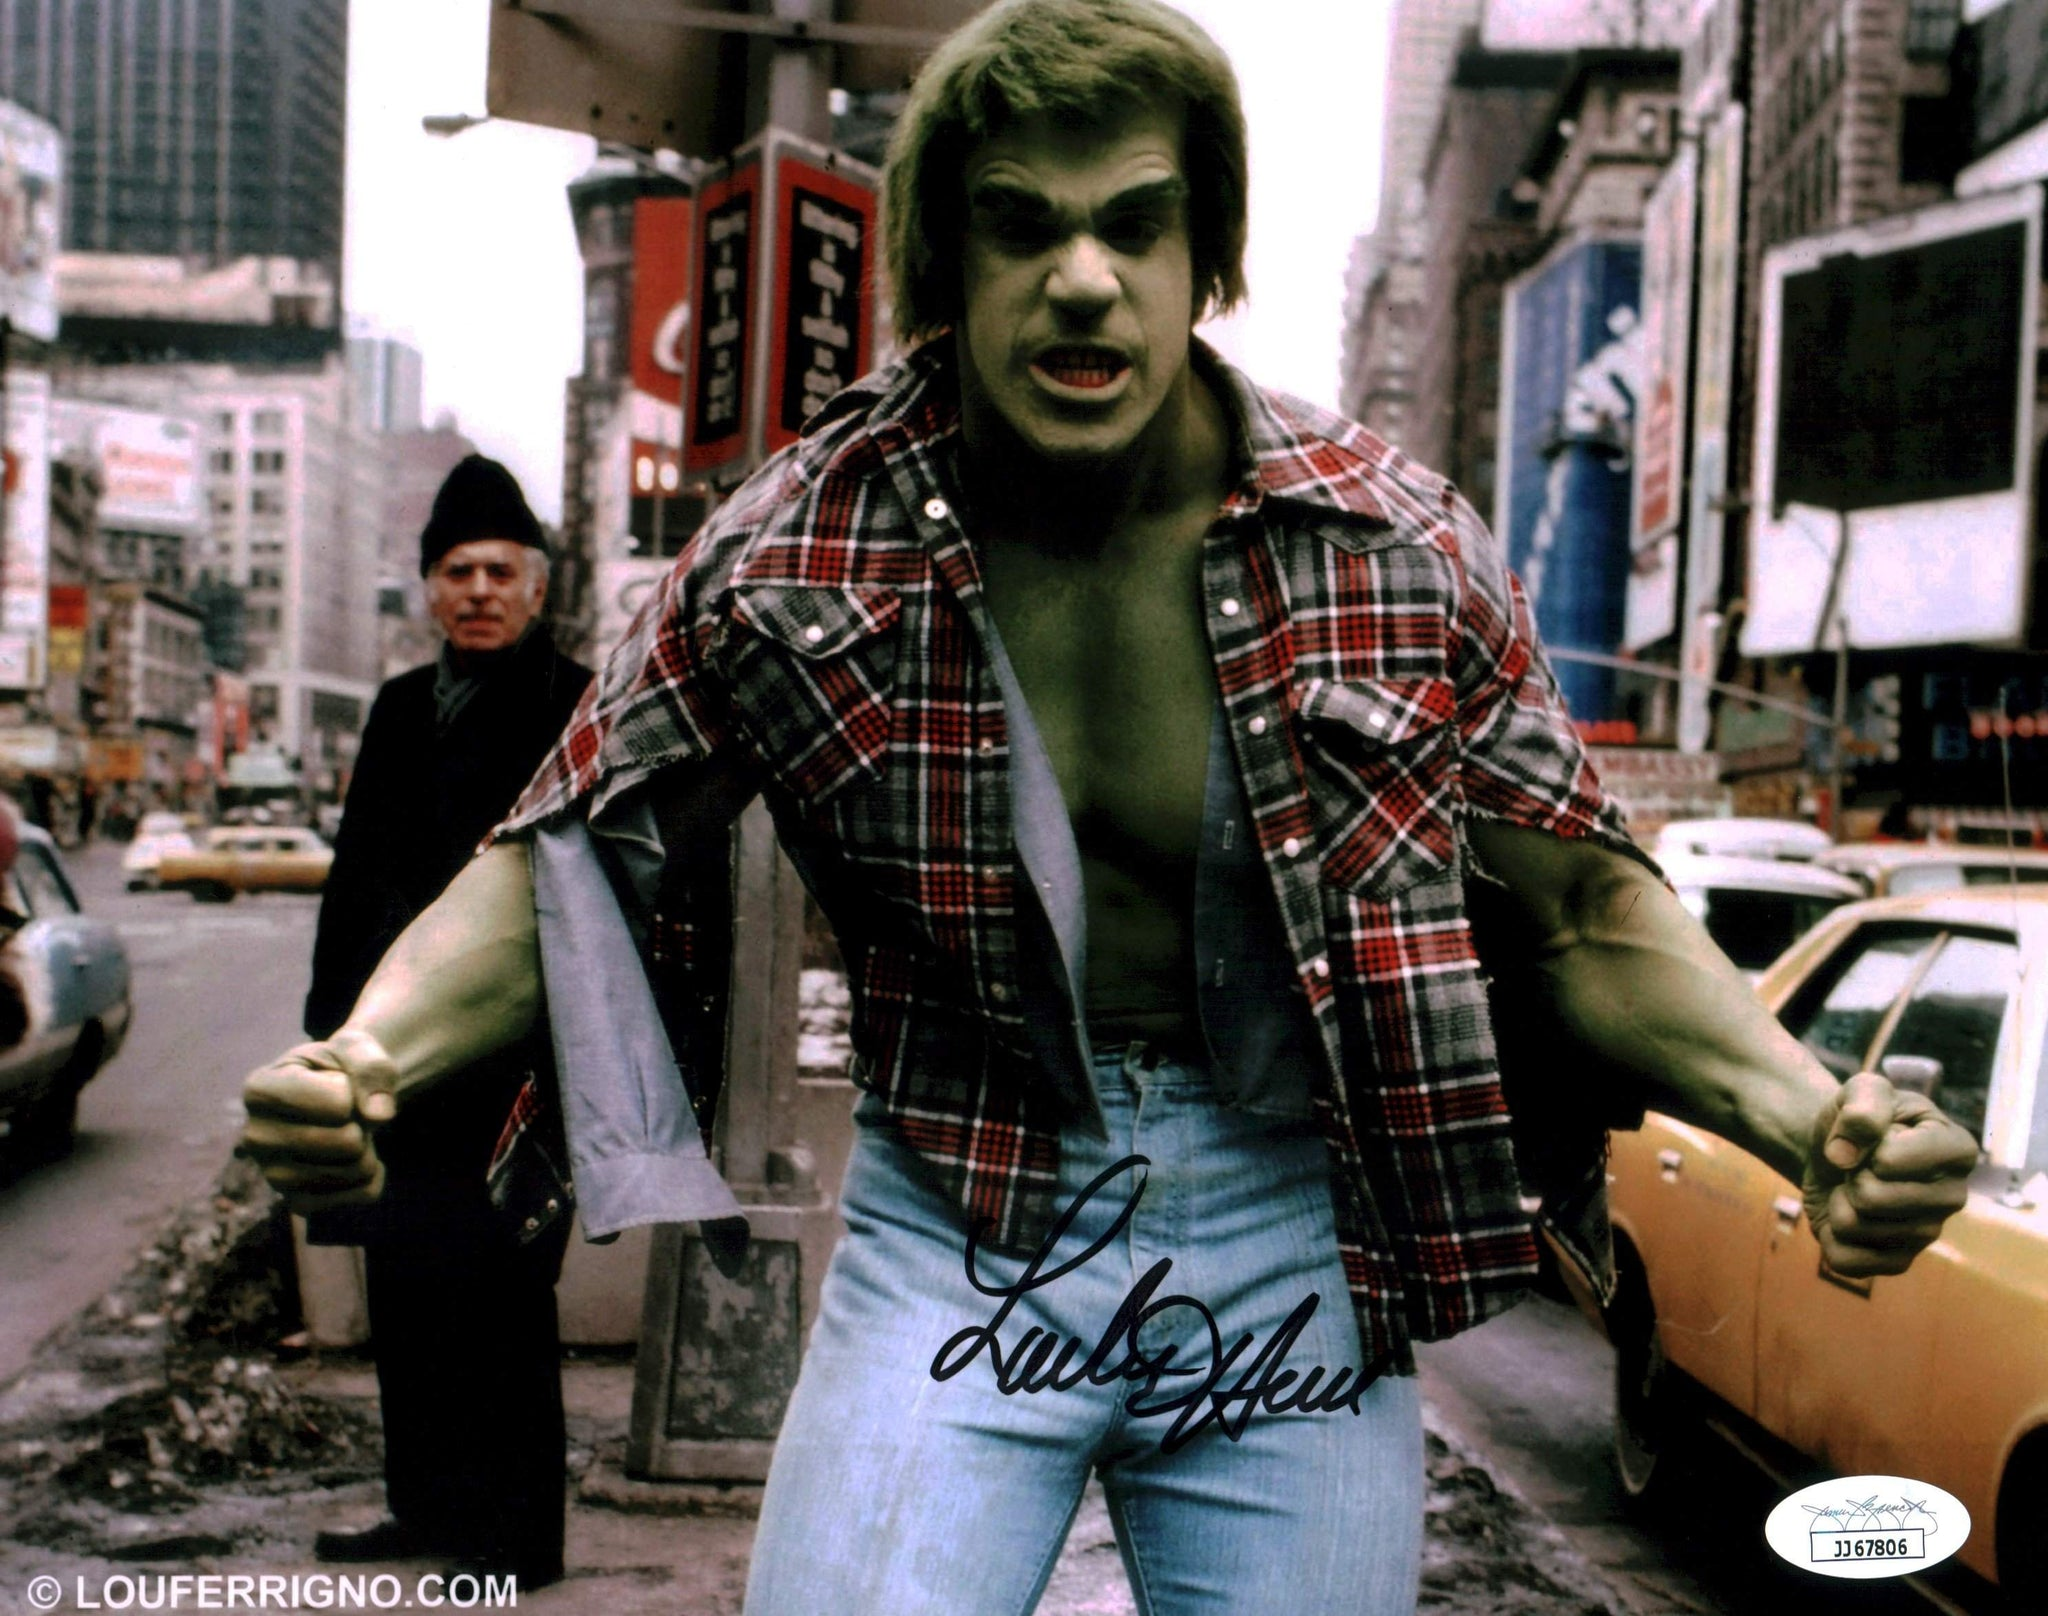 Lou Ferrigno The Hulk 8x10 Photo Signed Autographed JSA Certified COA GalaxyCon